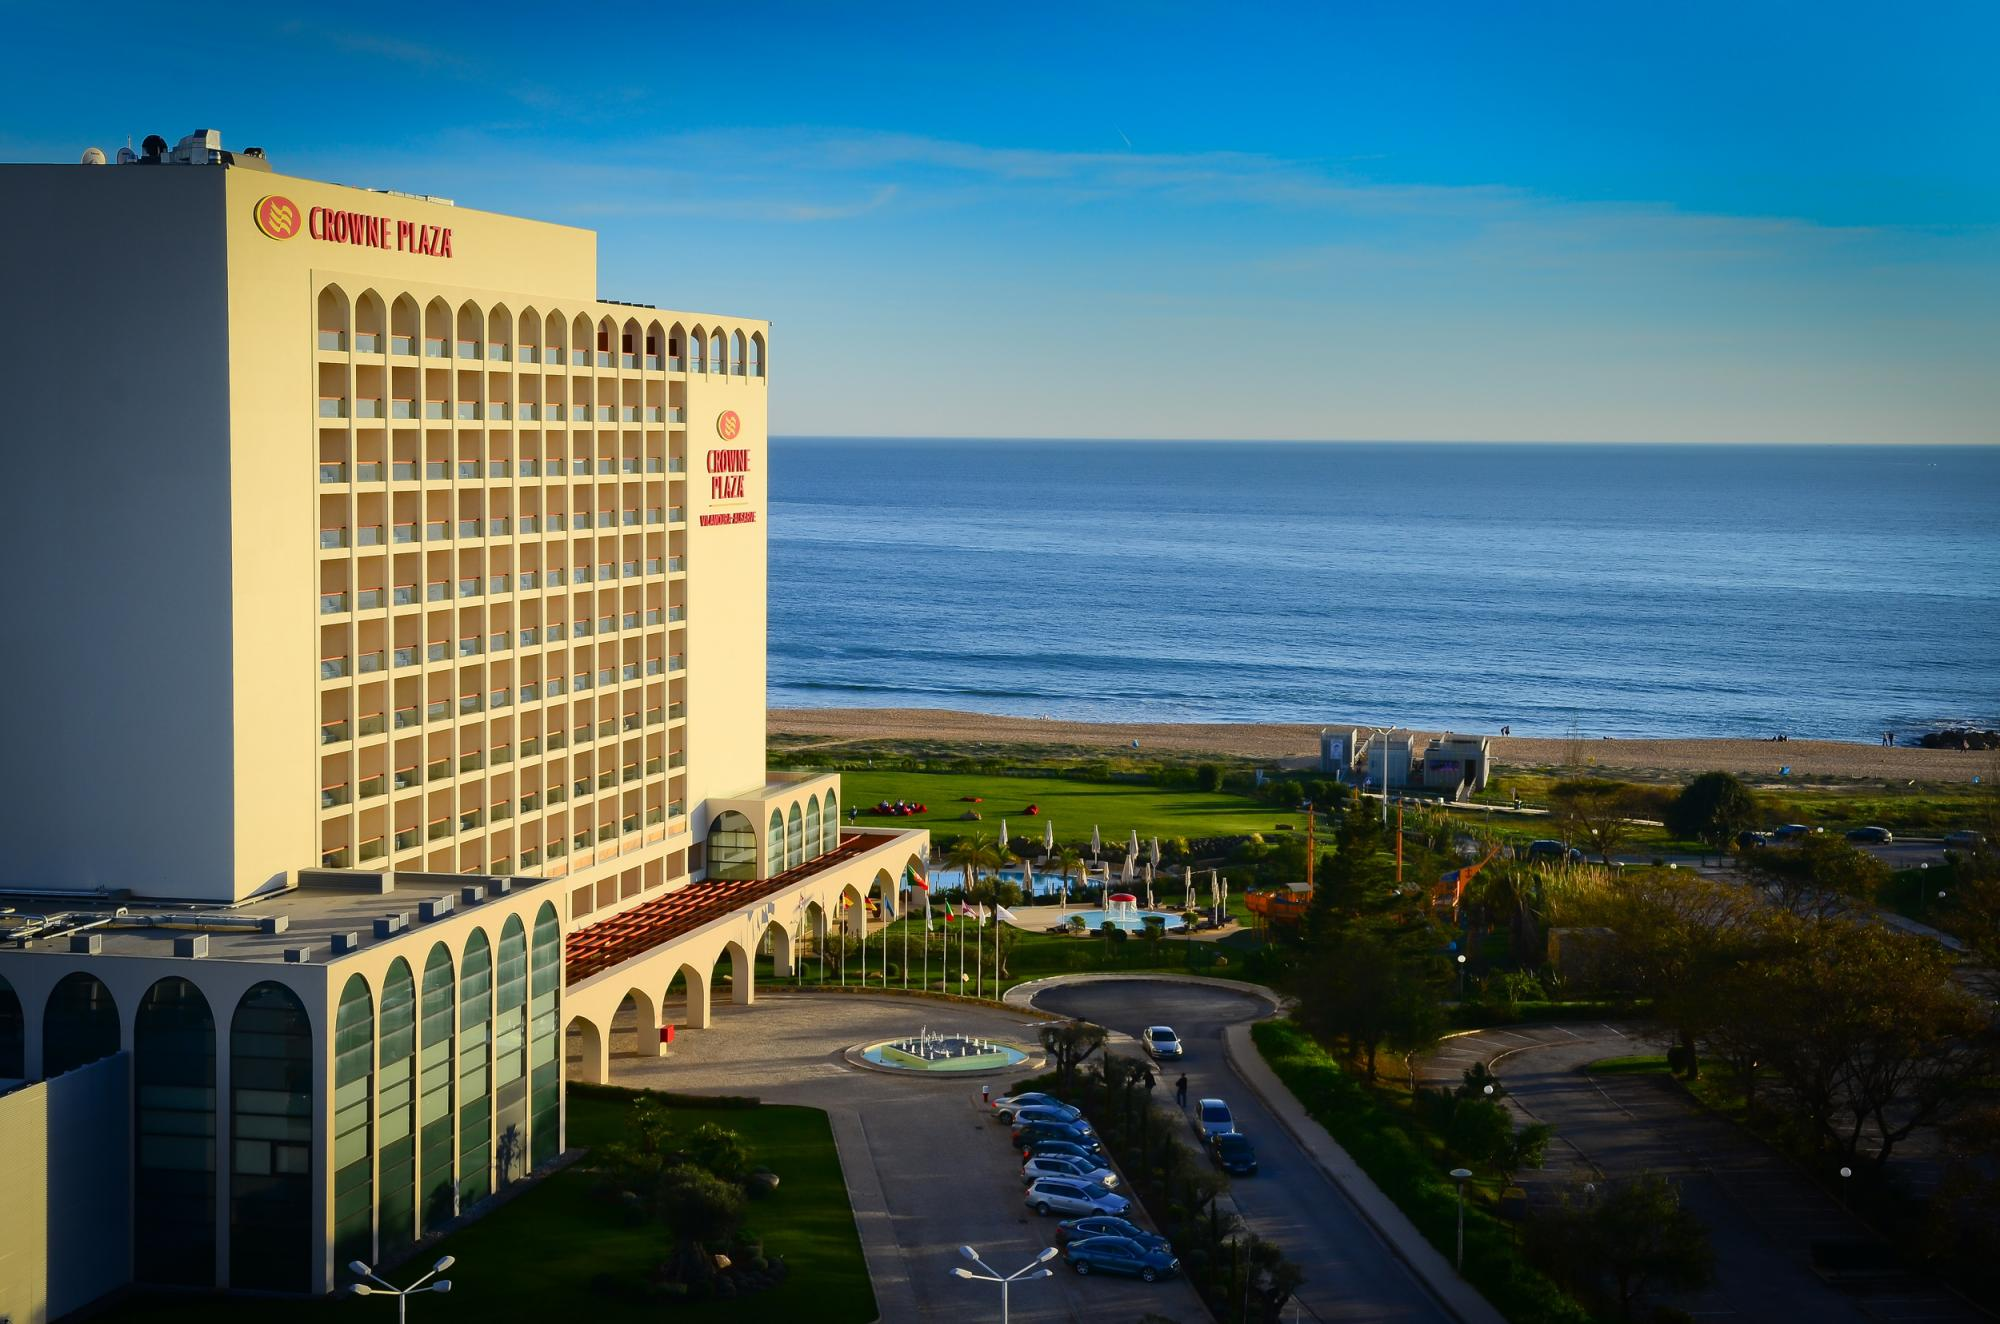 Crowne Plaza Hotel features one of the top sea views within Algarve